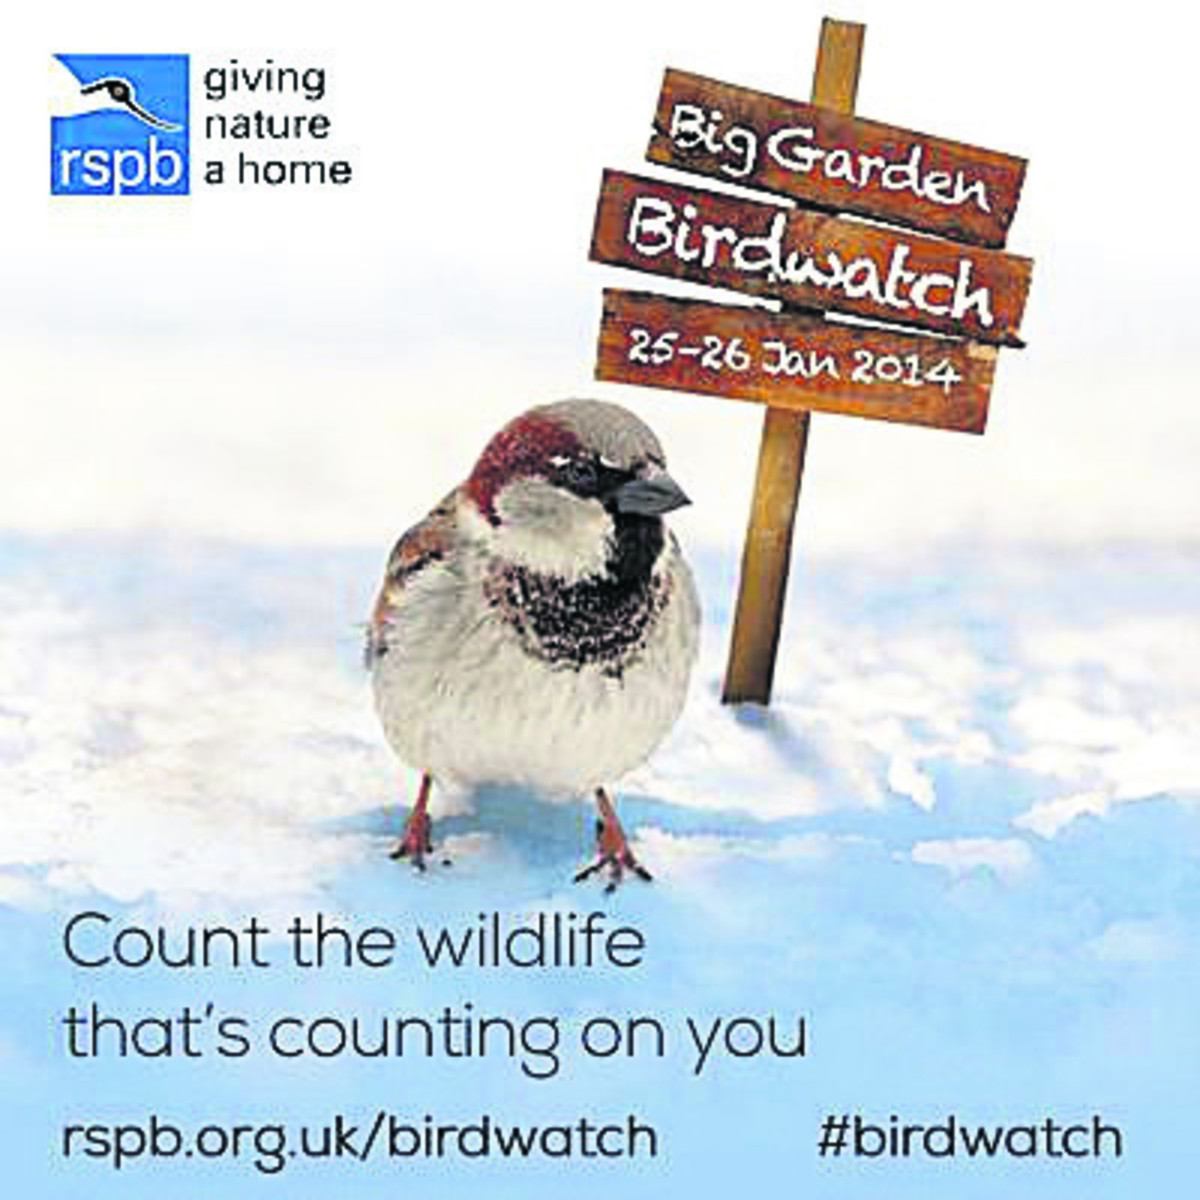 Over 6,000 people took part in this year's RSPB Big Garden Birdwatch in Wiltshire